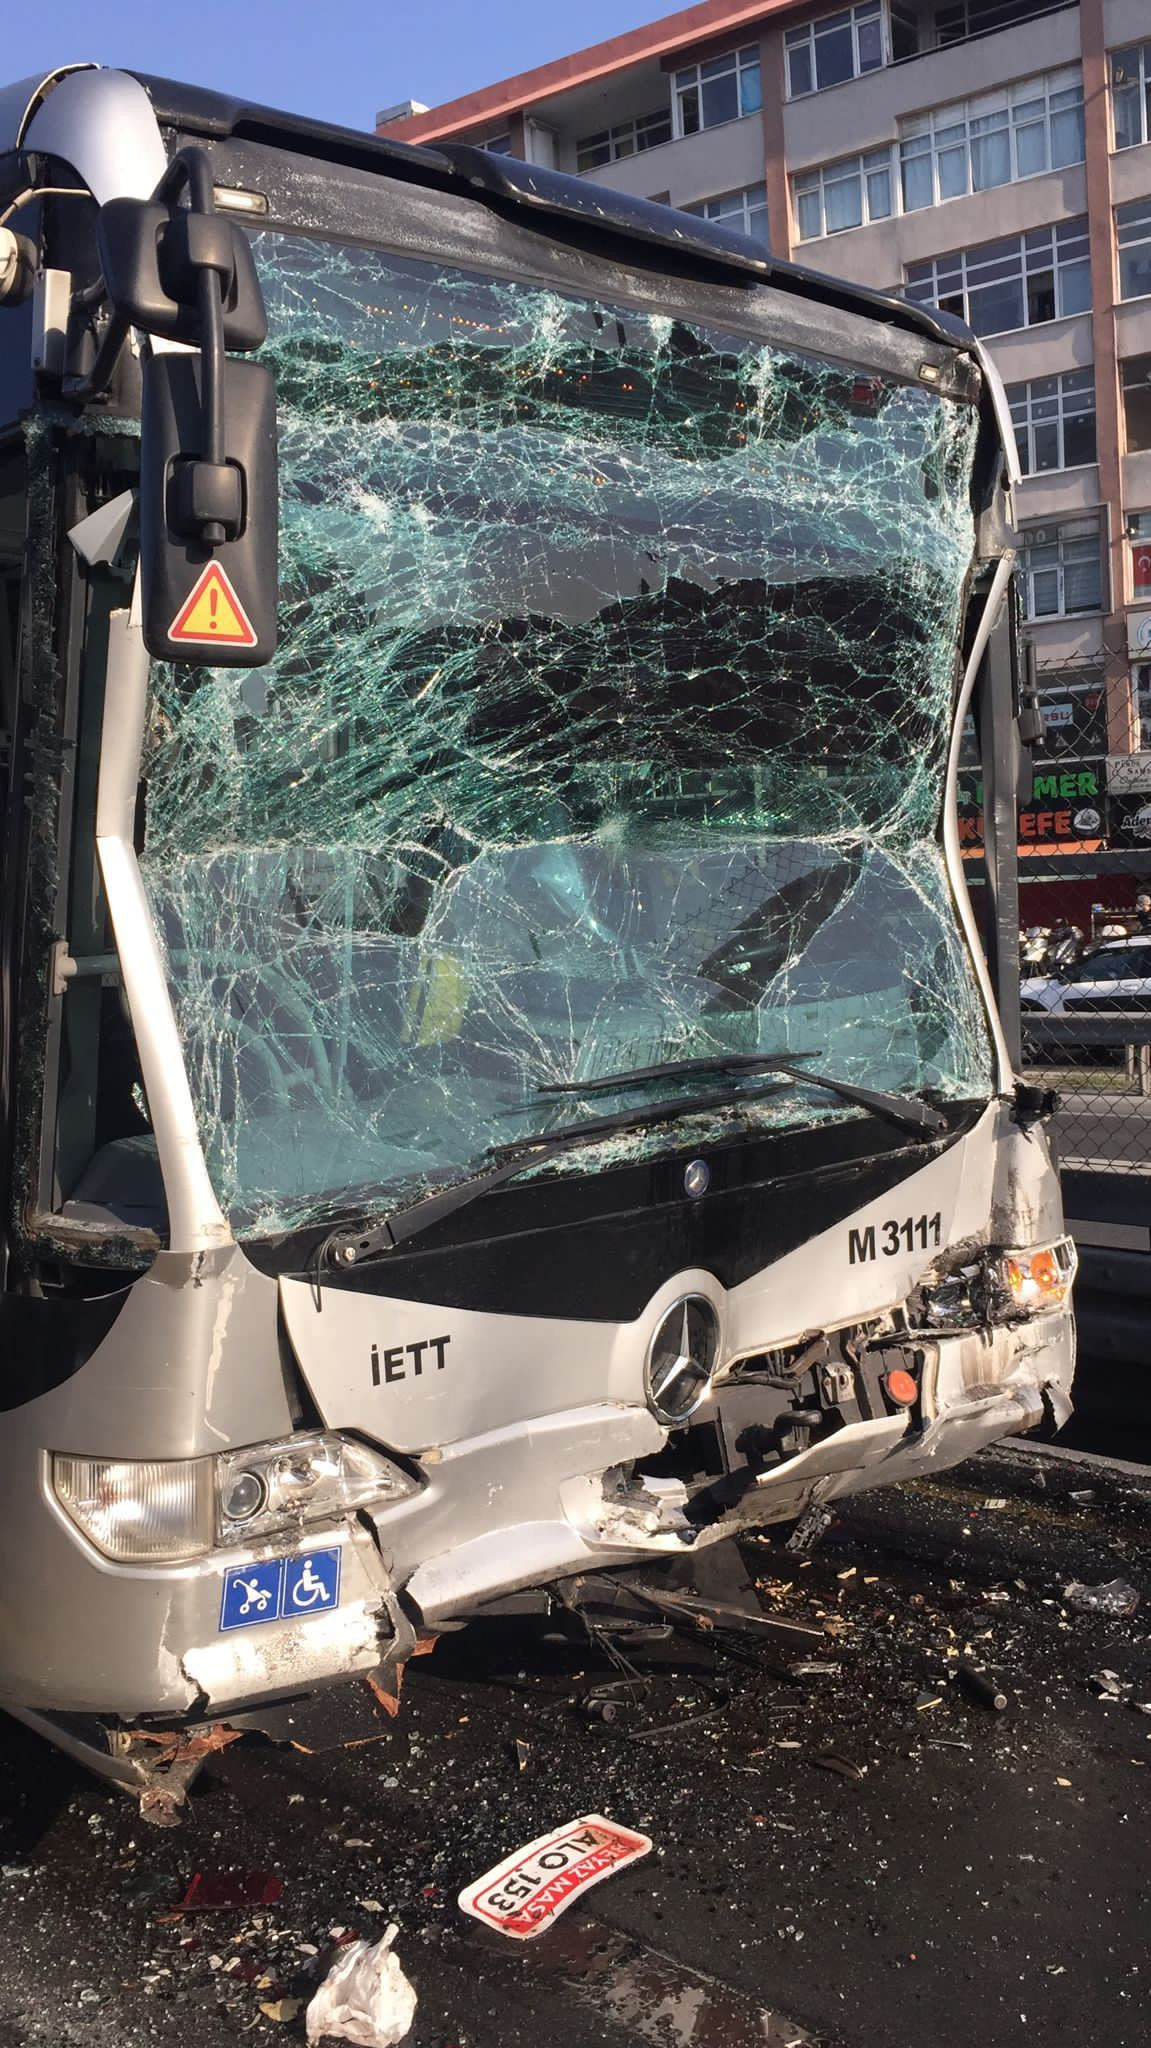 25 injured in metrobus collision in Istanbul during rush hour - Page 2